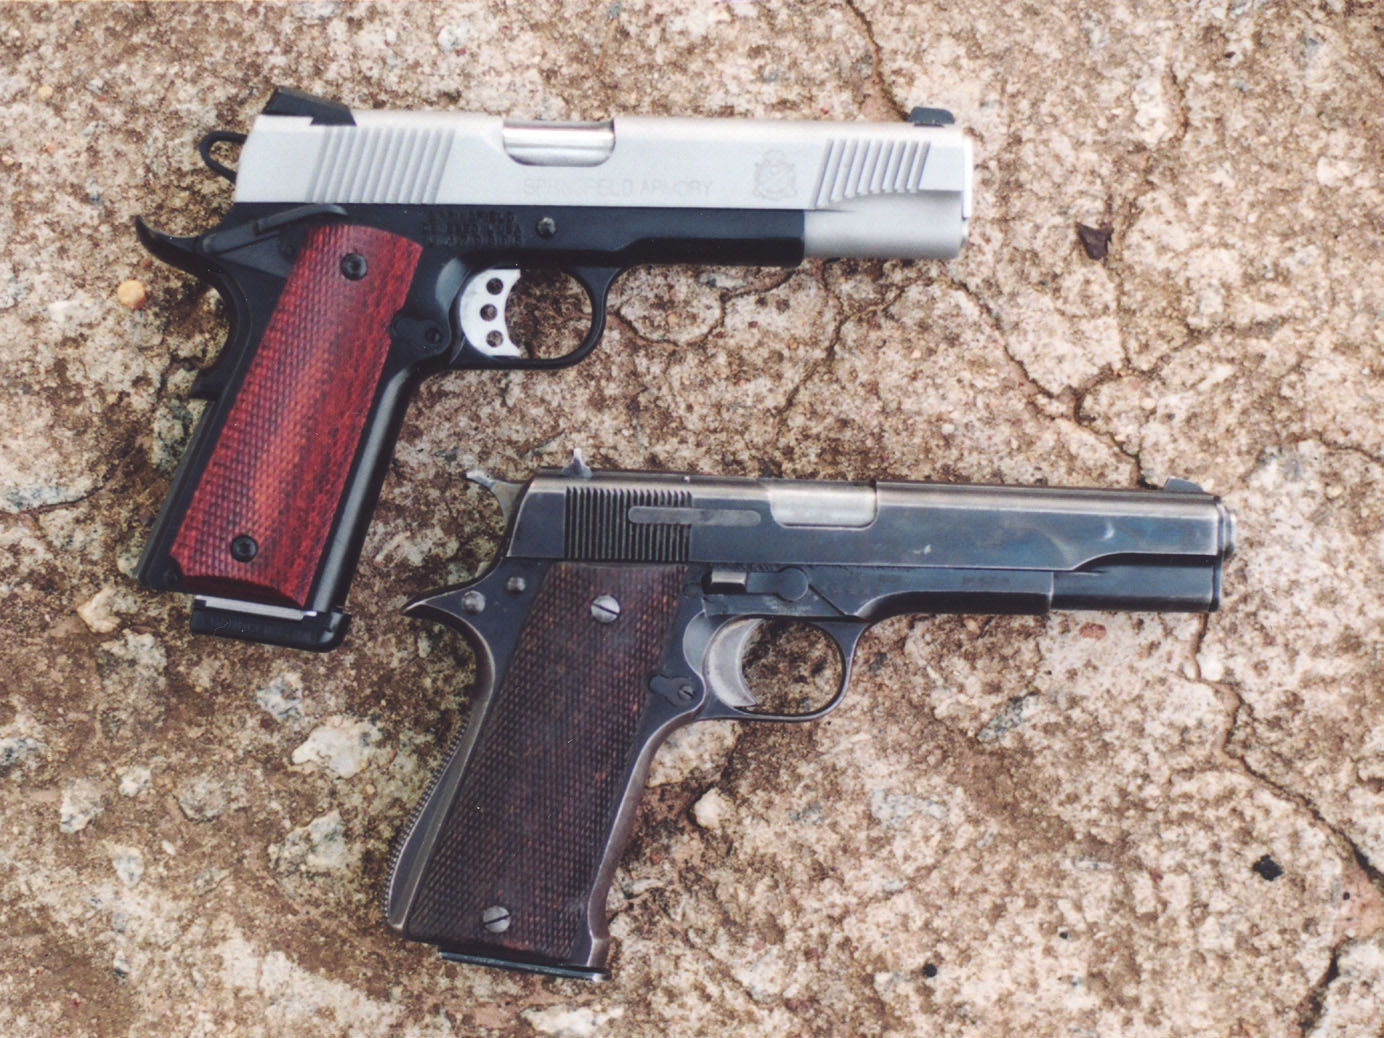 The Star Modelo Super, compared to a modern Springfield pistol, is obviously similar to the 1911 pistol but with some features Bob feels would be an improvement on the 1911.